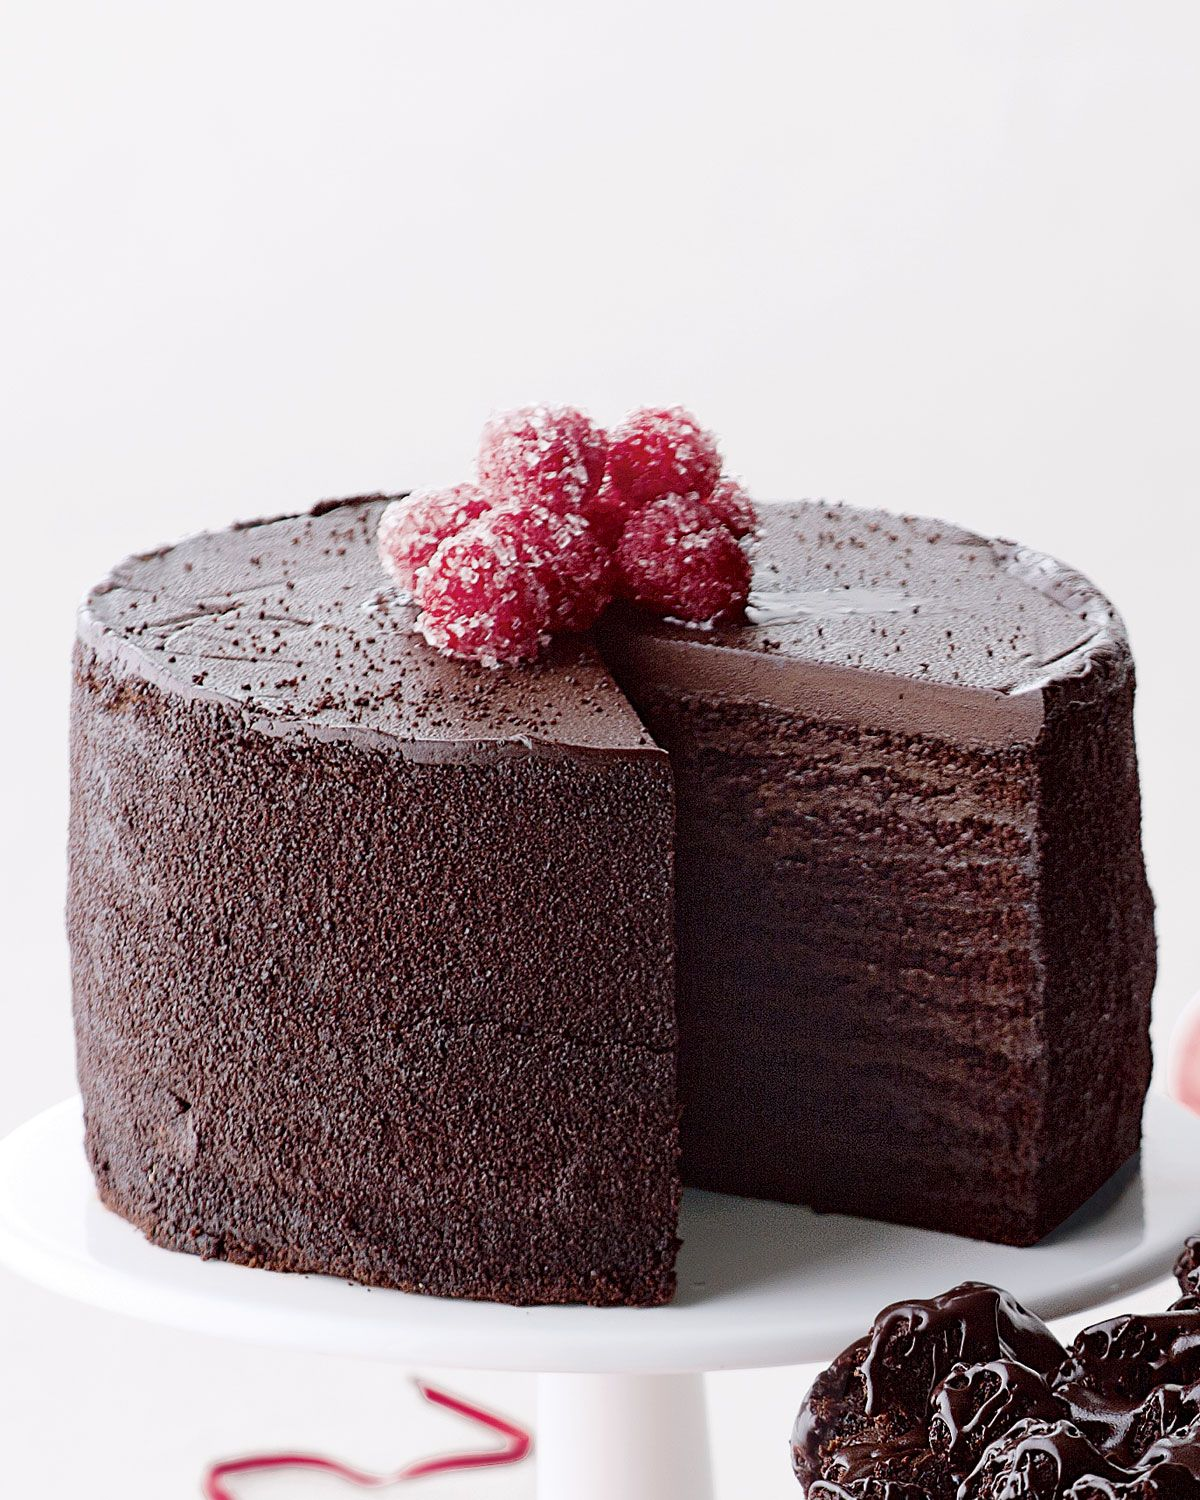 Strip House 24-Layer Chocolate Cake, For 8-10 People